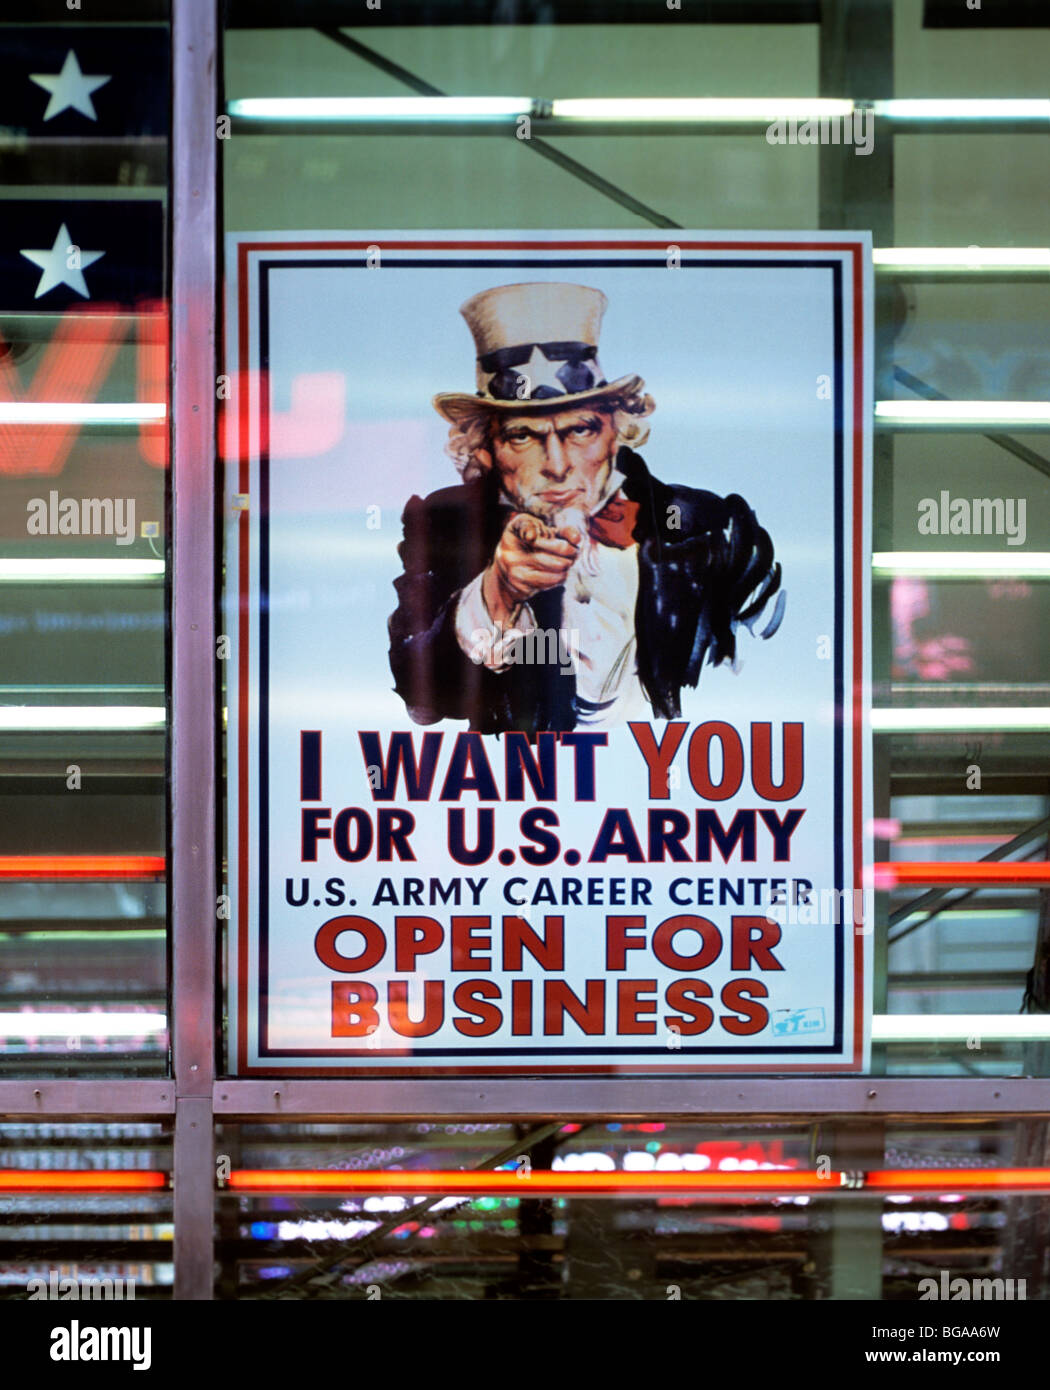 'I want you for U.S. Army' recruiting poster, US Army career centre, Times Square, New York City. - Stock Image